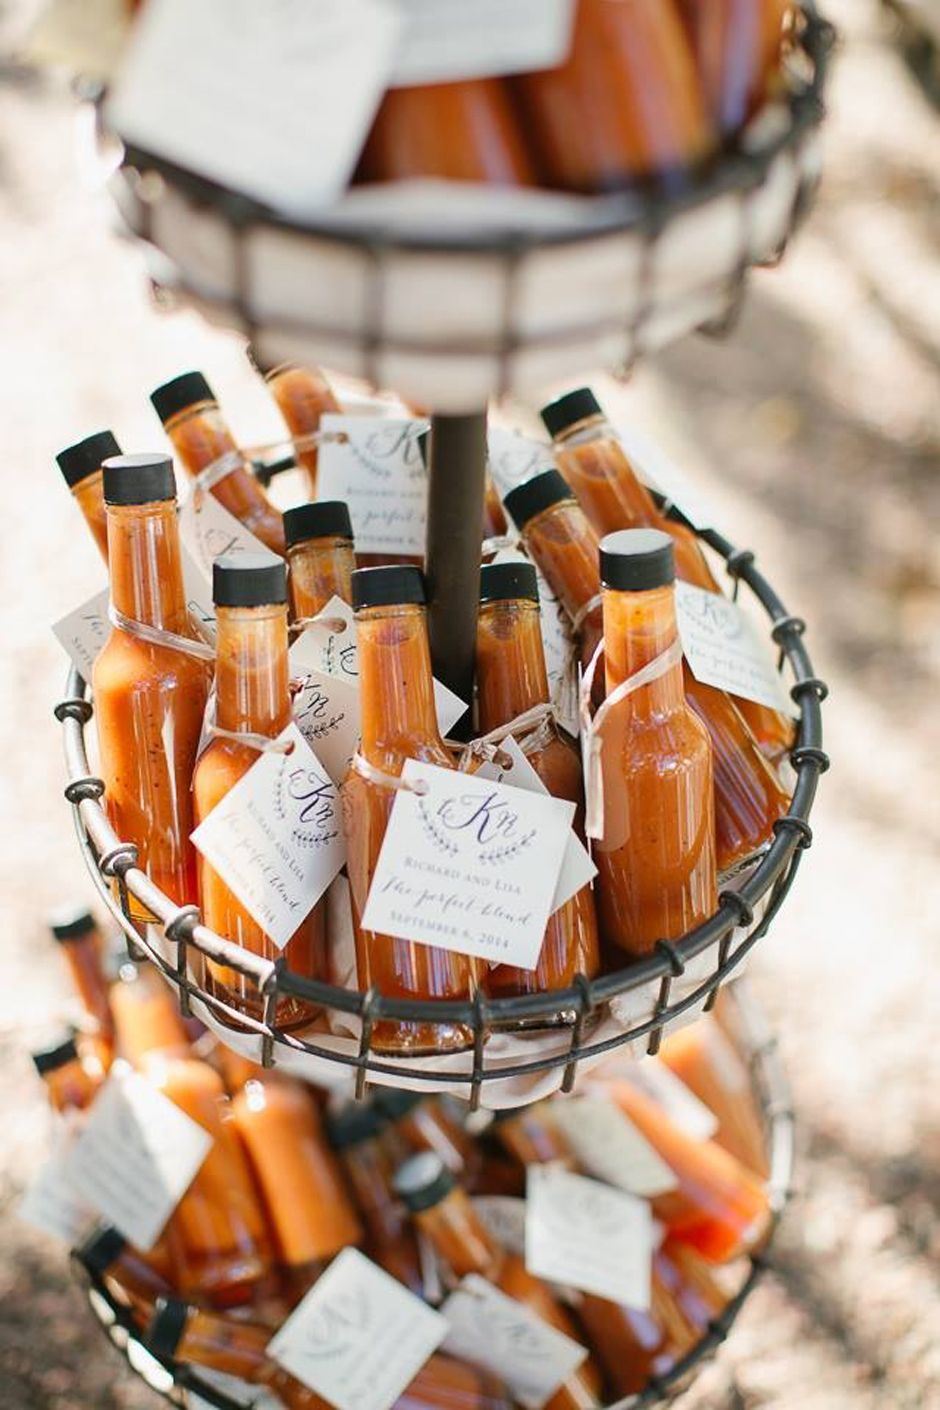 Miniature Bottles Of Hot Sauce Gathered In A Basket And Used As